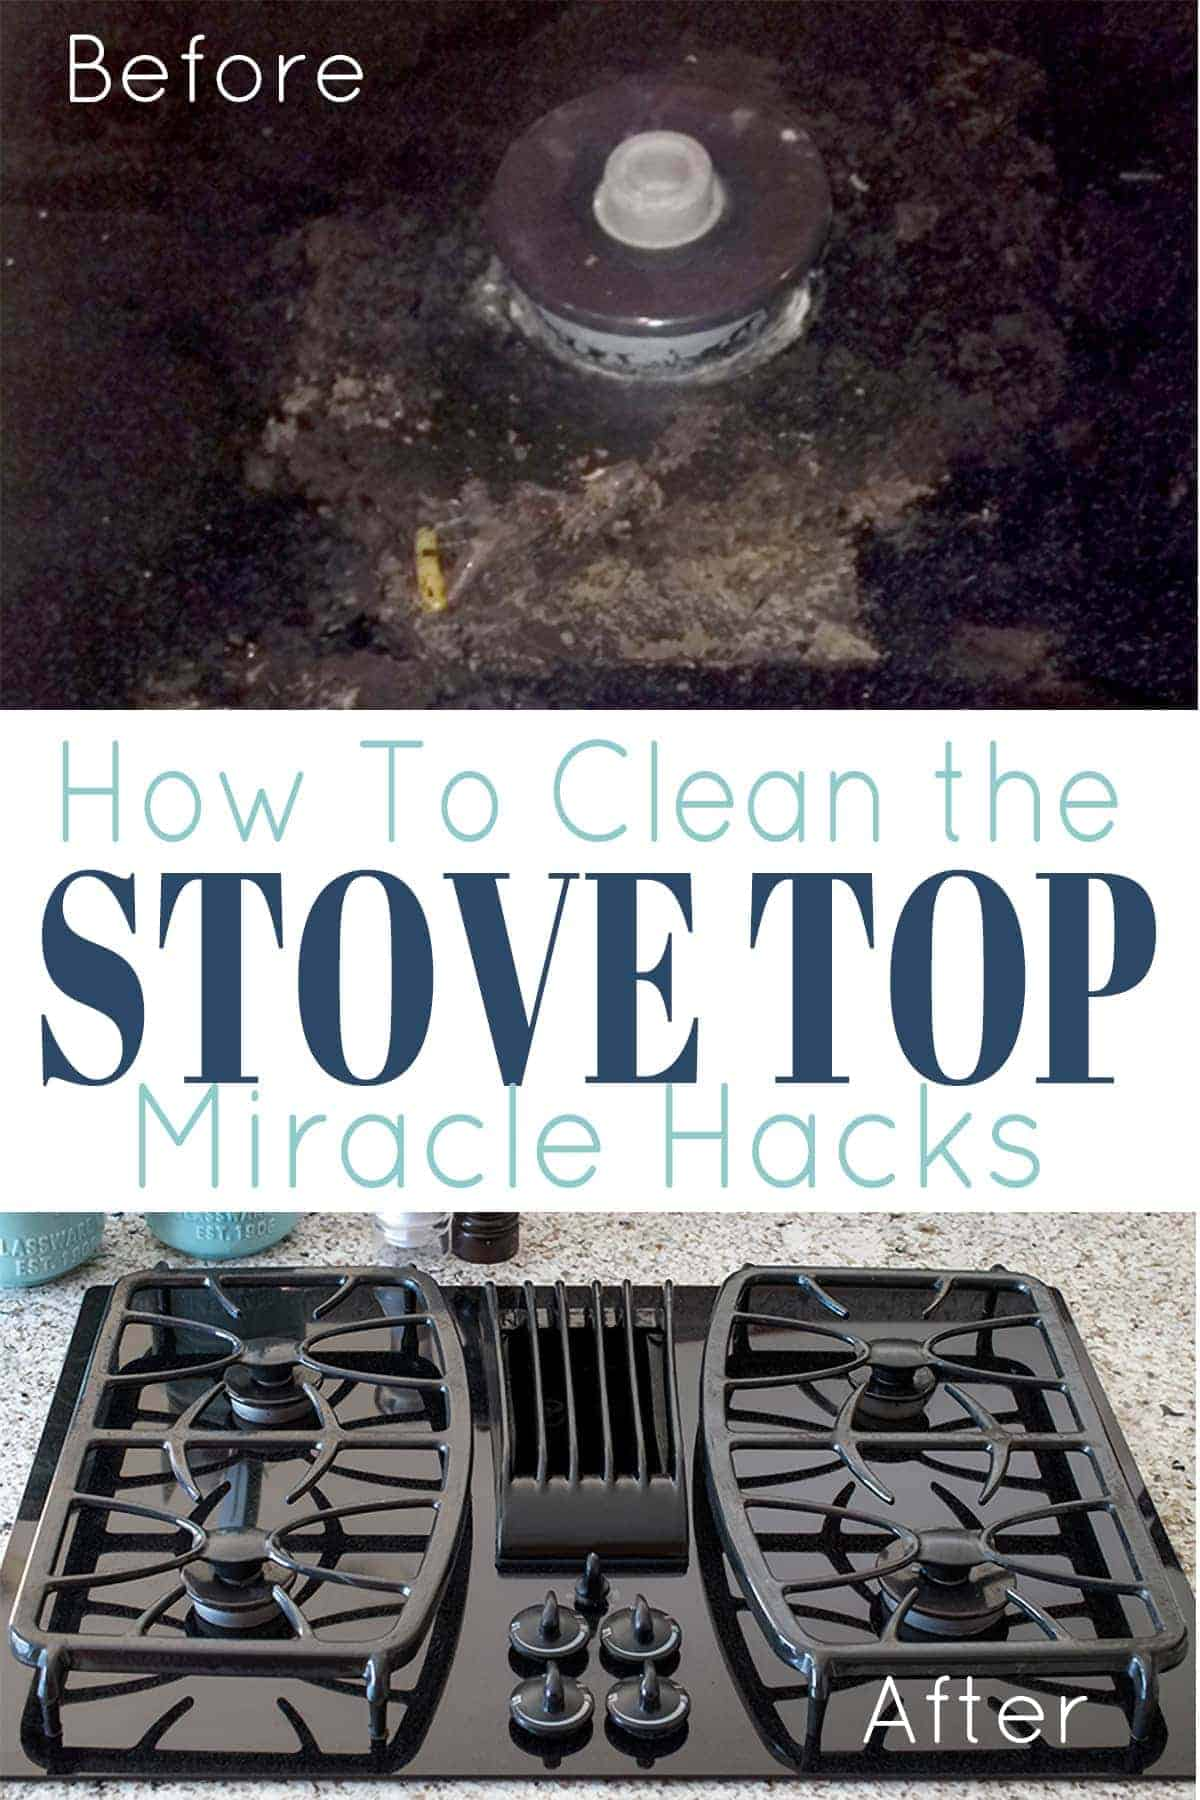 How to properly clean a glass stove top. Spotless Black glass top stove after cleaning residue and burned on food.